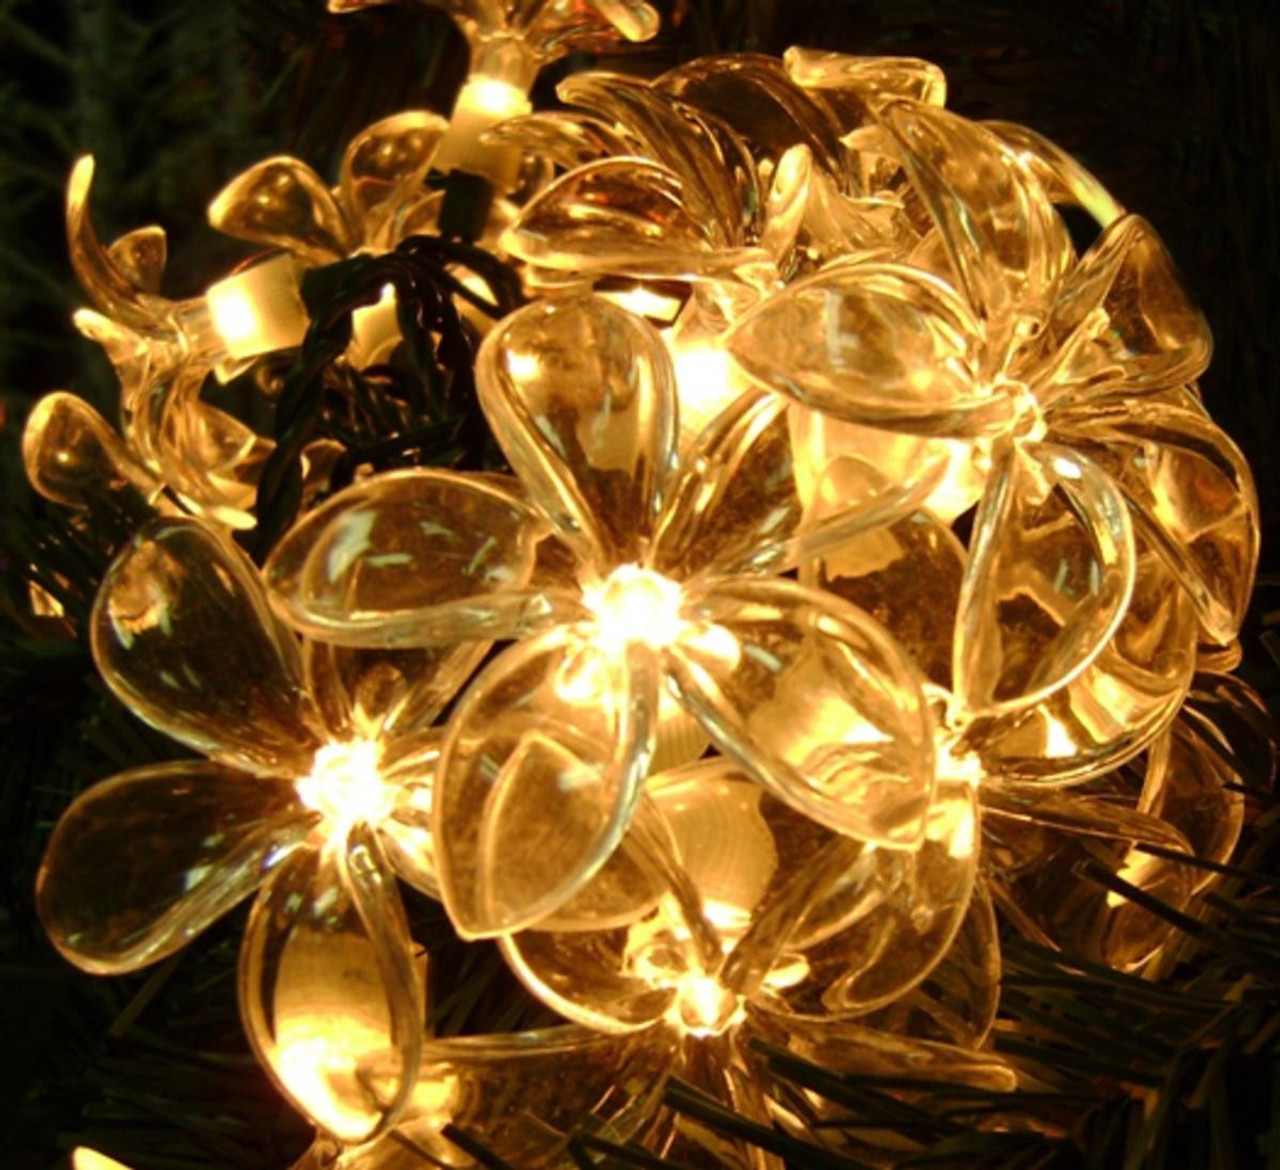 Set of 20 Plumeria Flower Clear Novelty Christmas Lights - Green ...